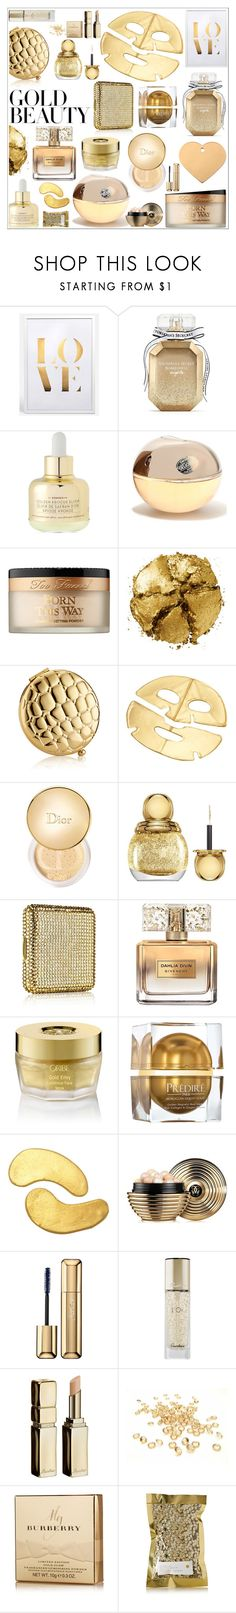 """Golden Girls: Gold Beauty"" by lushxoxo ❤ liked on Polyvore featuring beauty, Victoria's Secret, Korres, Donna Karan, Too Faced Cosmetics, Pat McGrath, Estée Lauder, MZ Skin, Christian Dior and Givenchy"